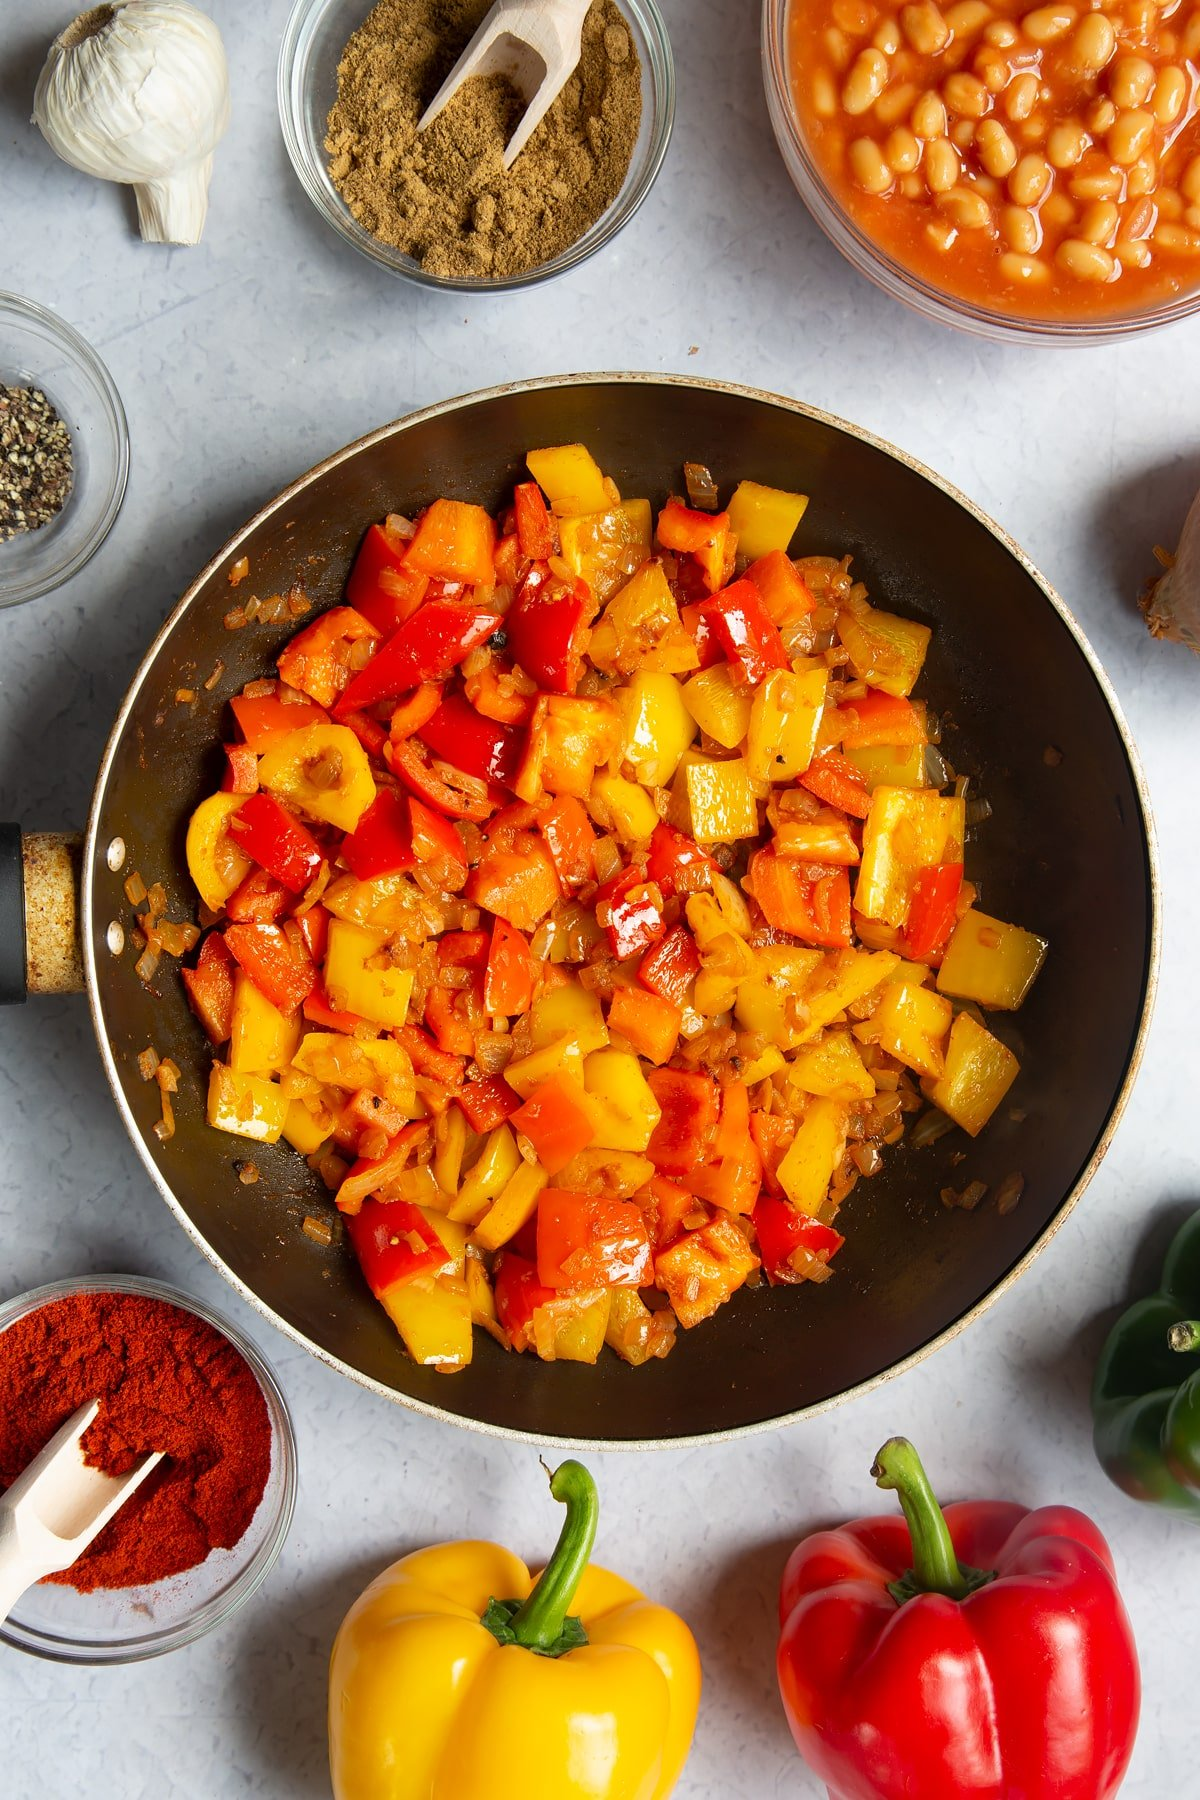 A frying pan containing fried onion, garlic, paprika, cumin, pepper and red and yellow peppers. Ingredients to make baked bean chilli surround the pan.